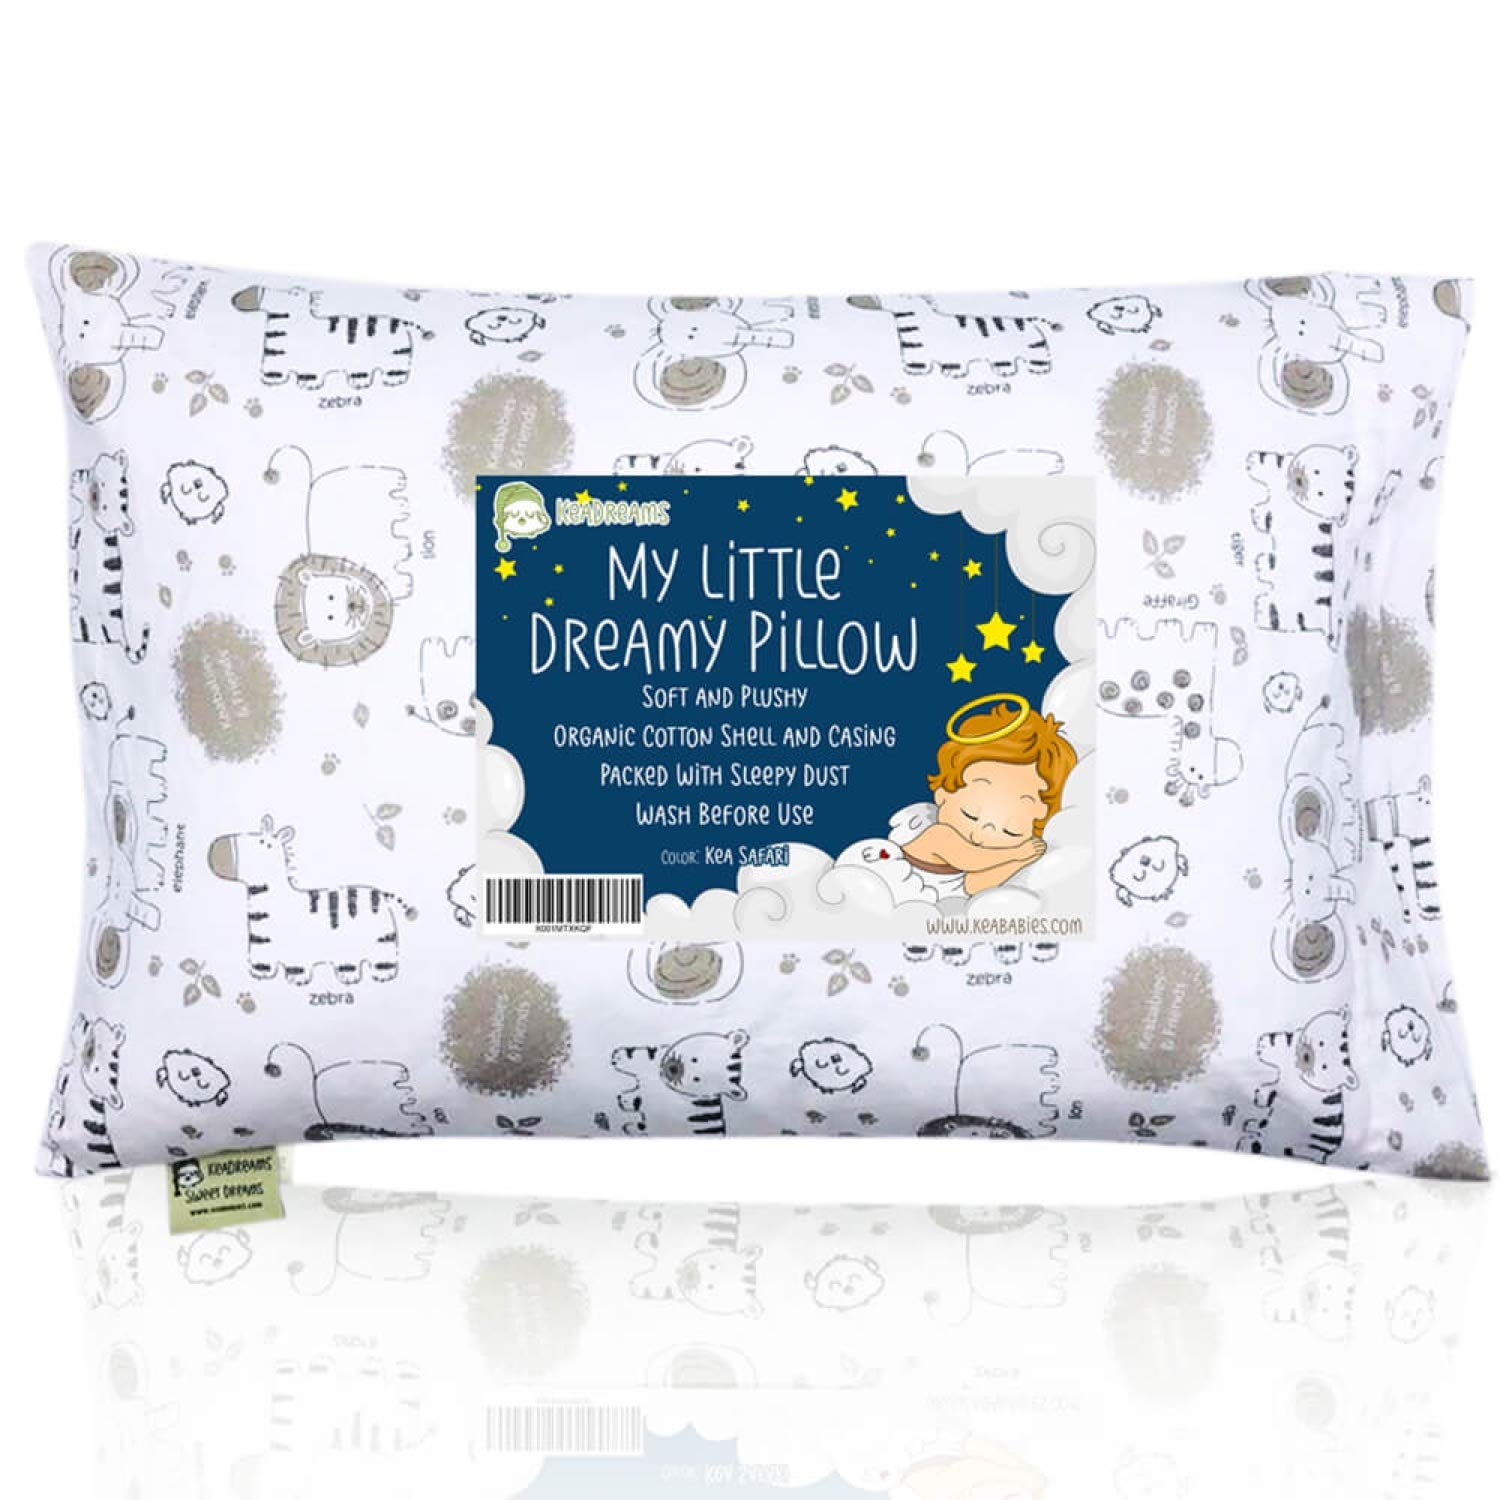 Toddler Pillow With Pillowcase - 13X18 Soft Organic Cotton Baby Pillows For Sleeping - Machine Washable - Toddlers, Kids, Infant - Perfect For Travel,...